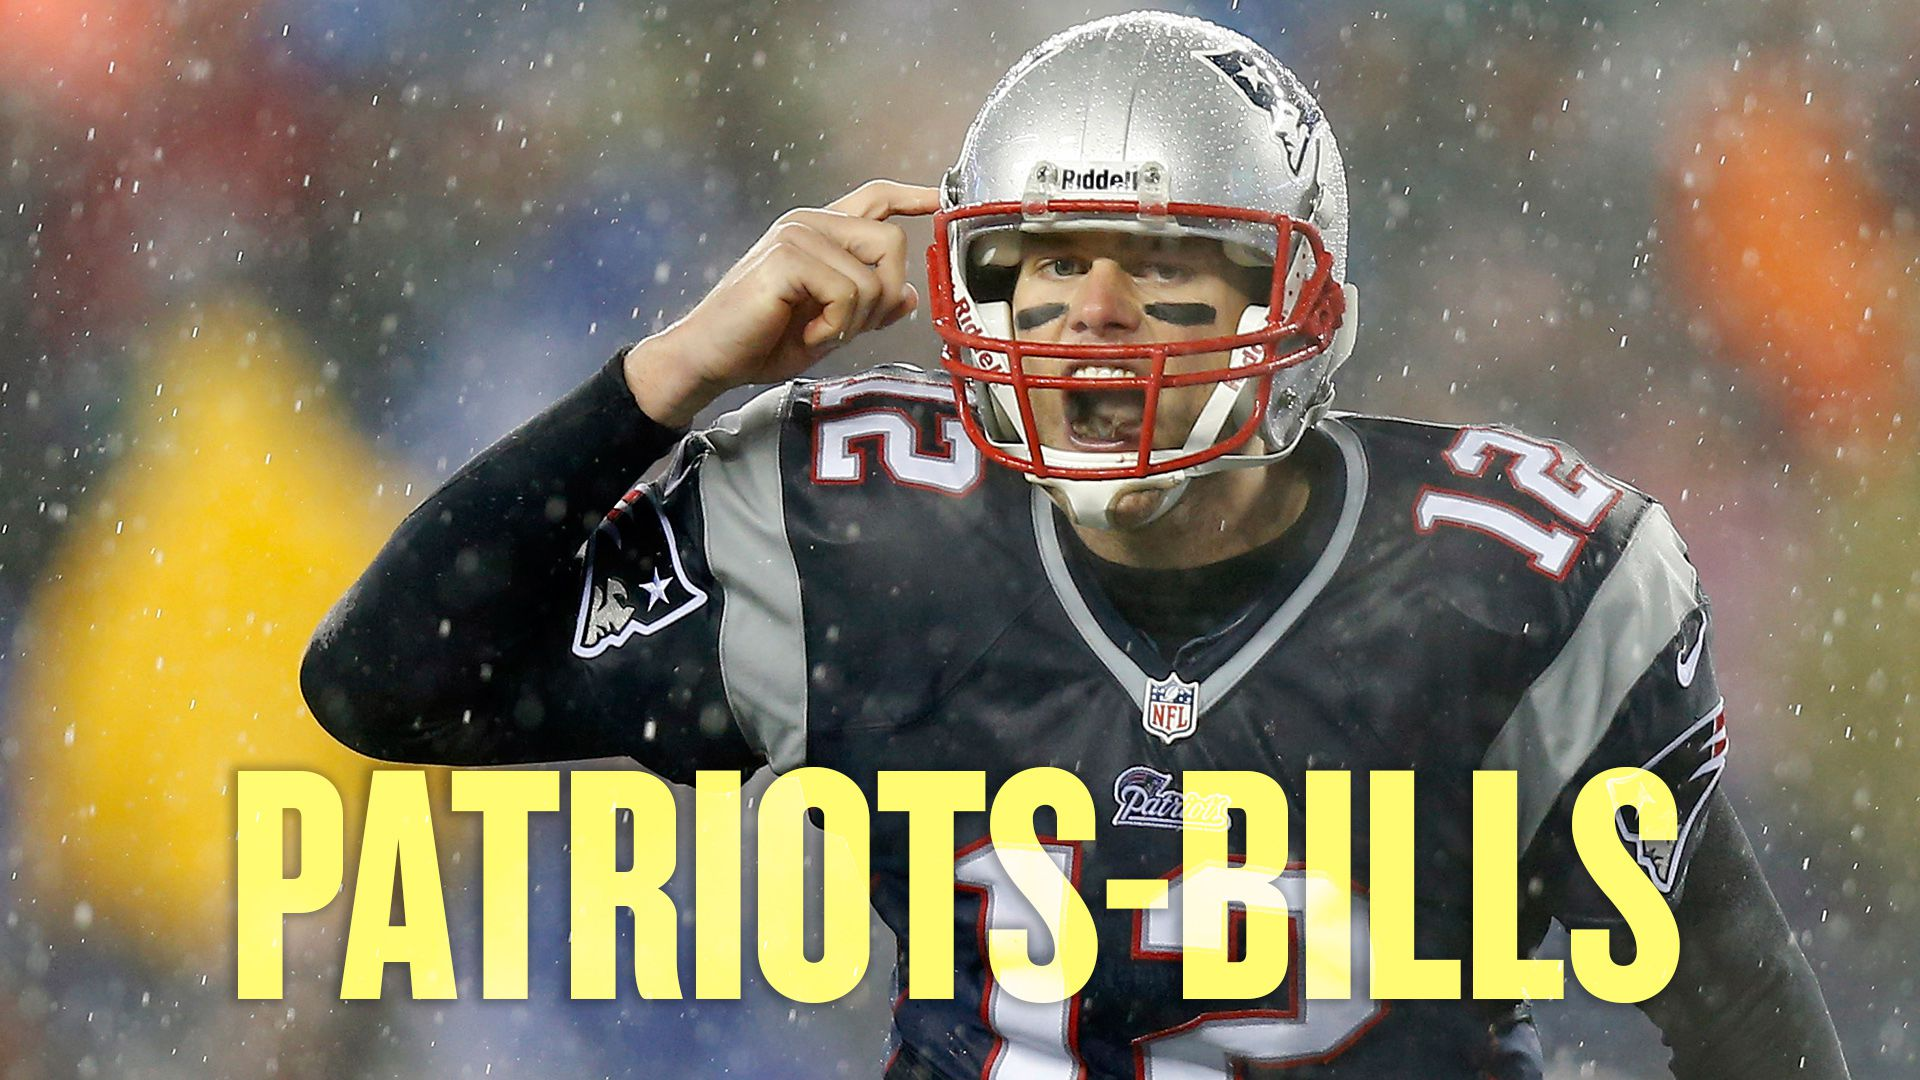 NFL picks and predictions, Patriots vs. Bills 2015: Buffalo is formidable foe for defending champs